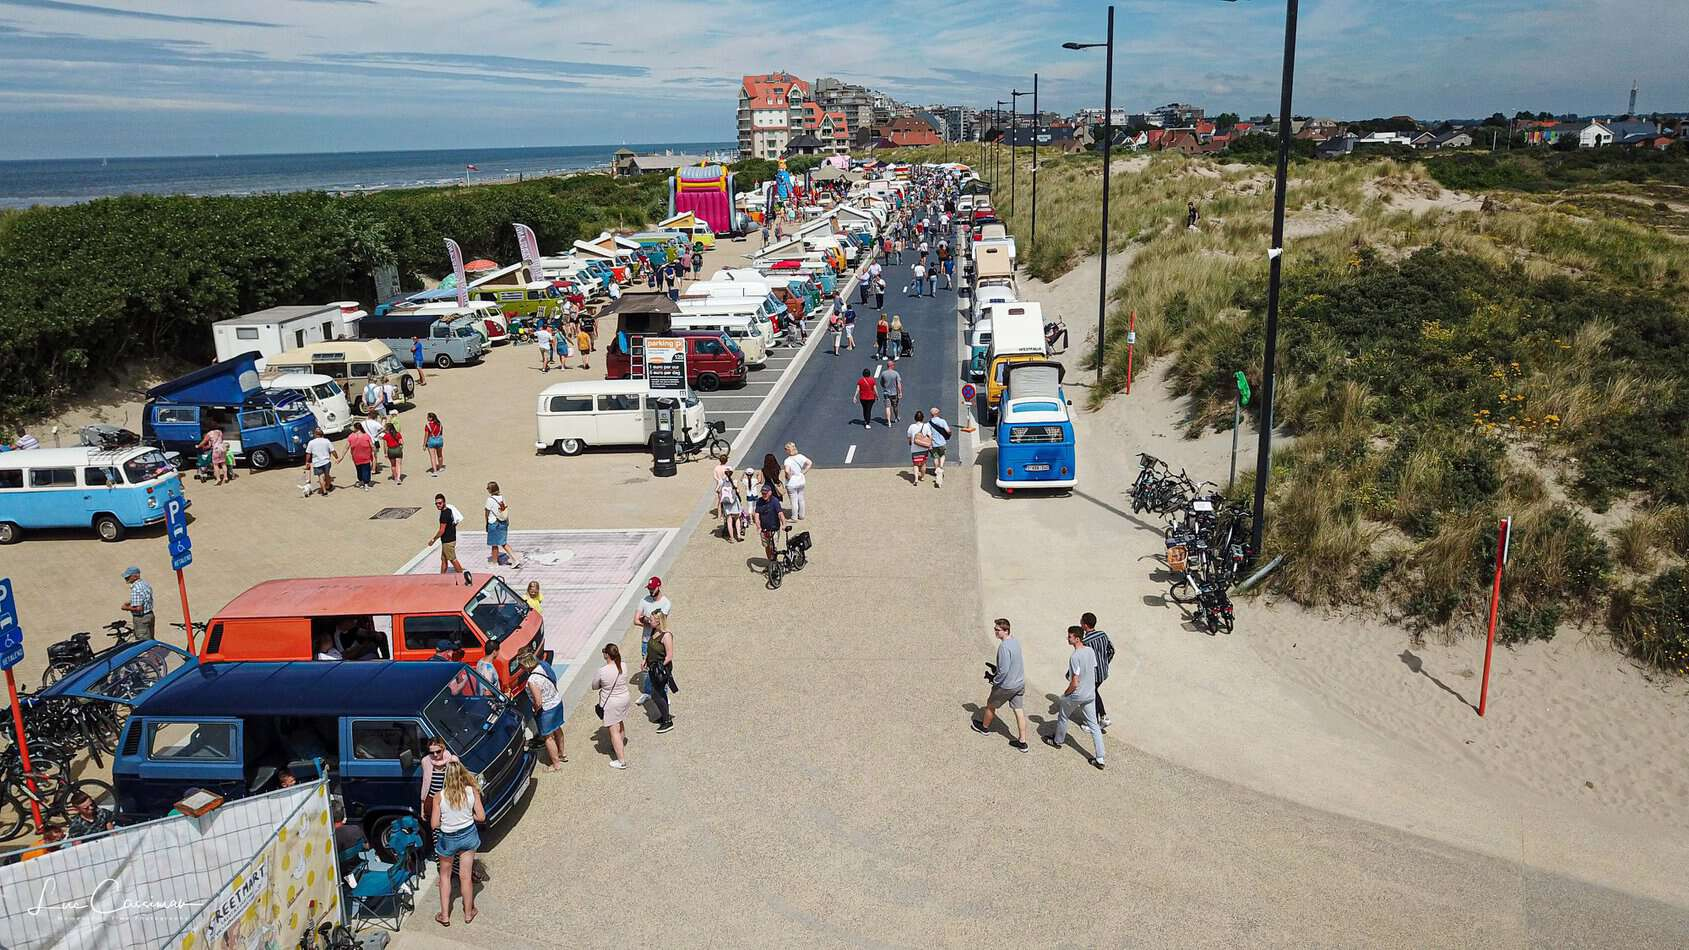 VW Bus Meeting Westende 2019 - Bilder